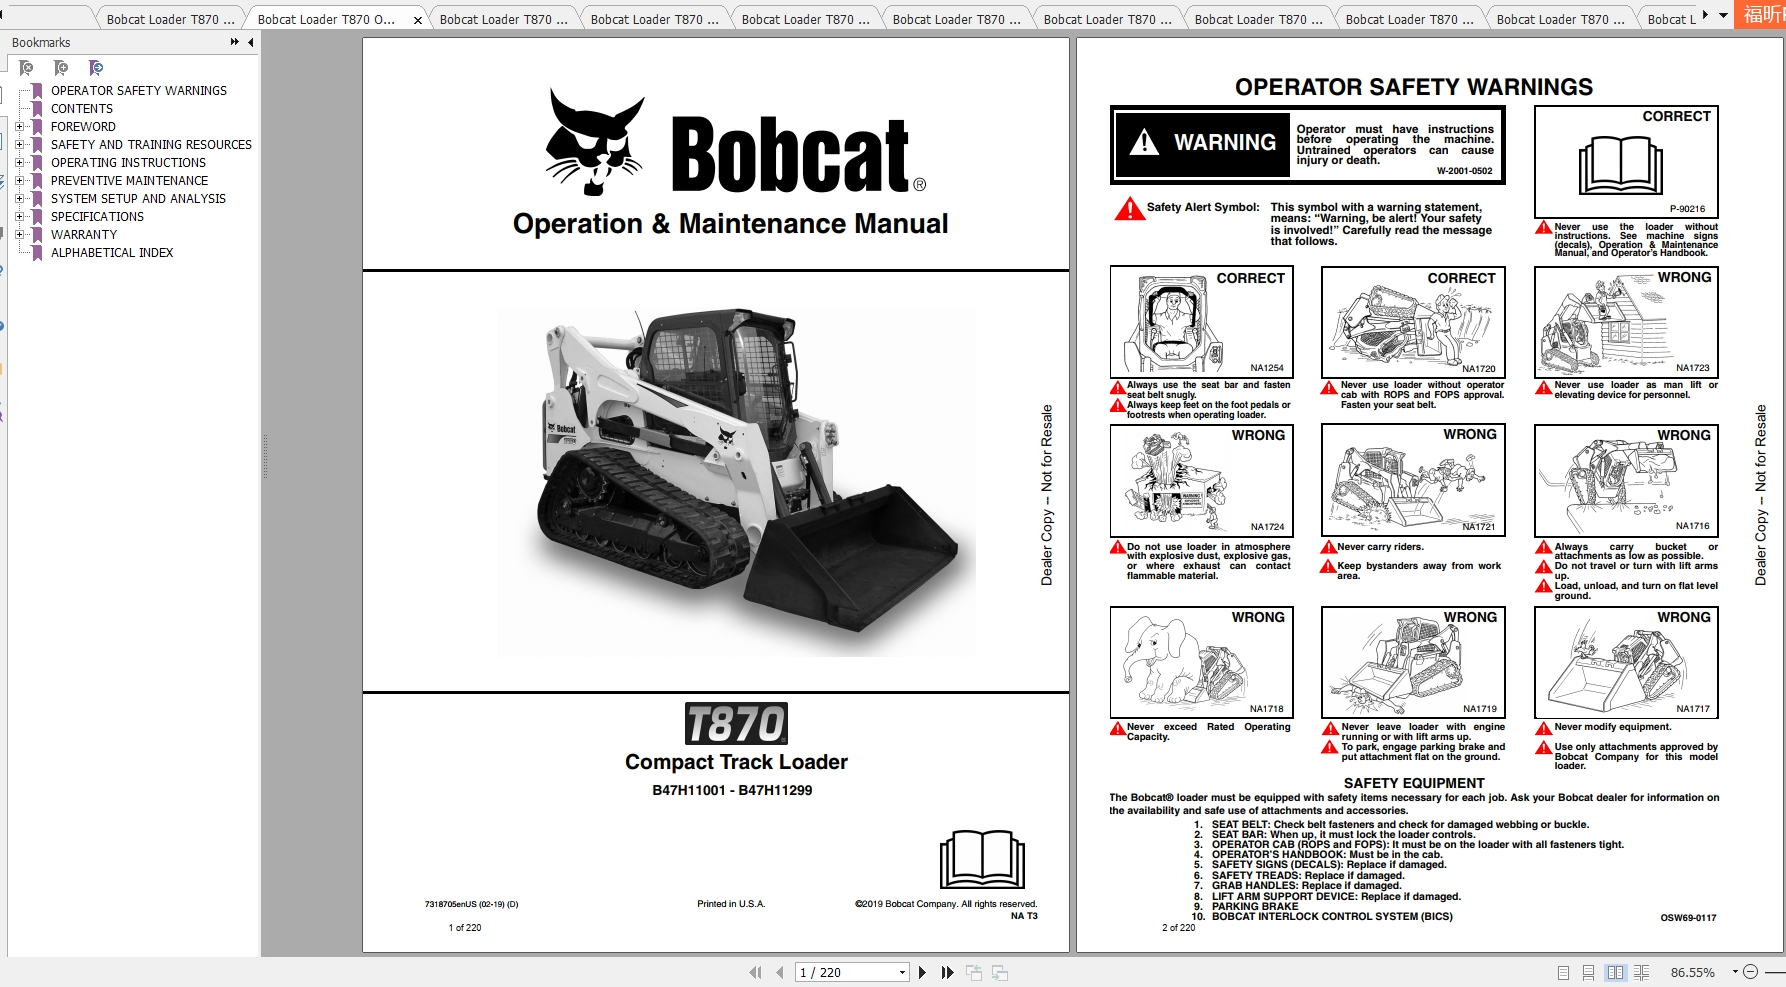 Bobcat Compact Track Loader T870 Operating & Maintenance